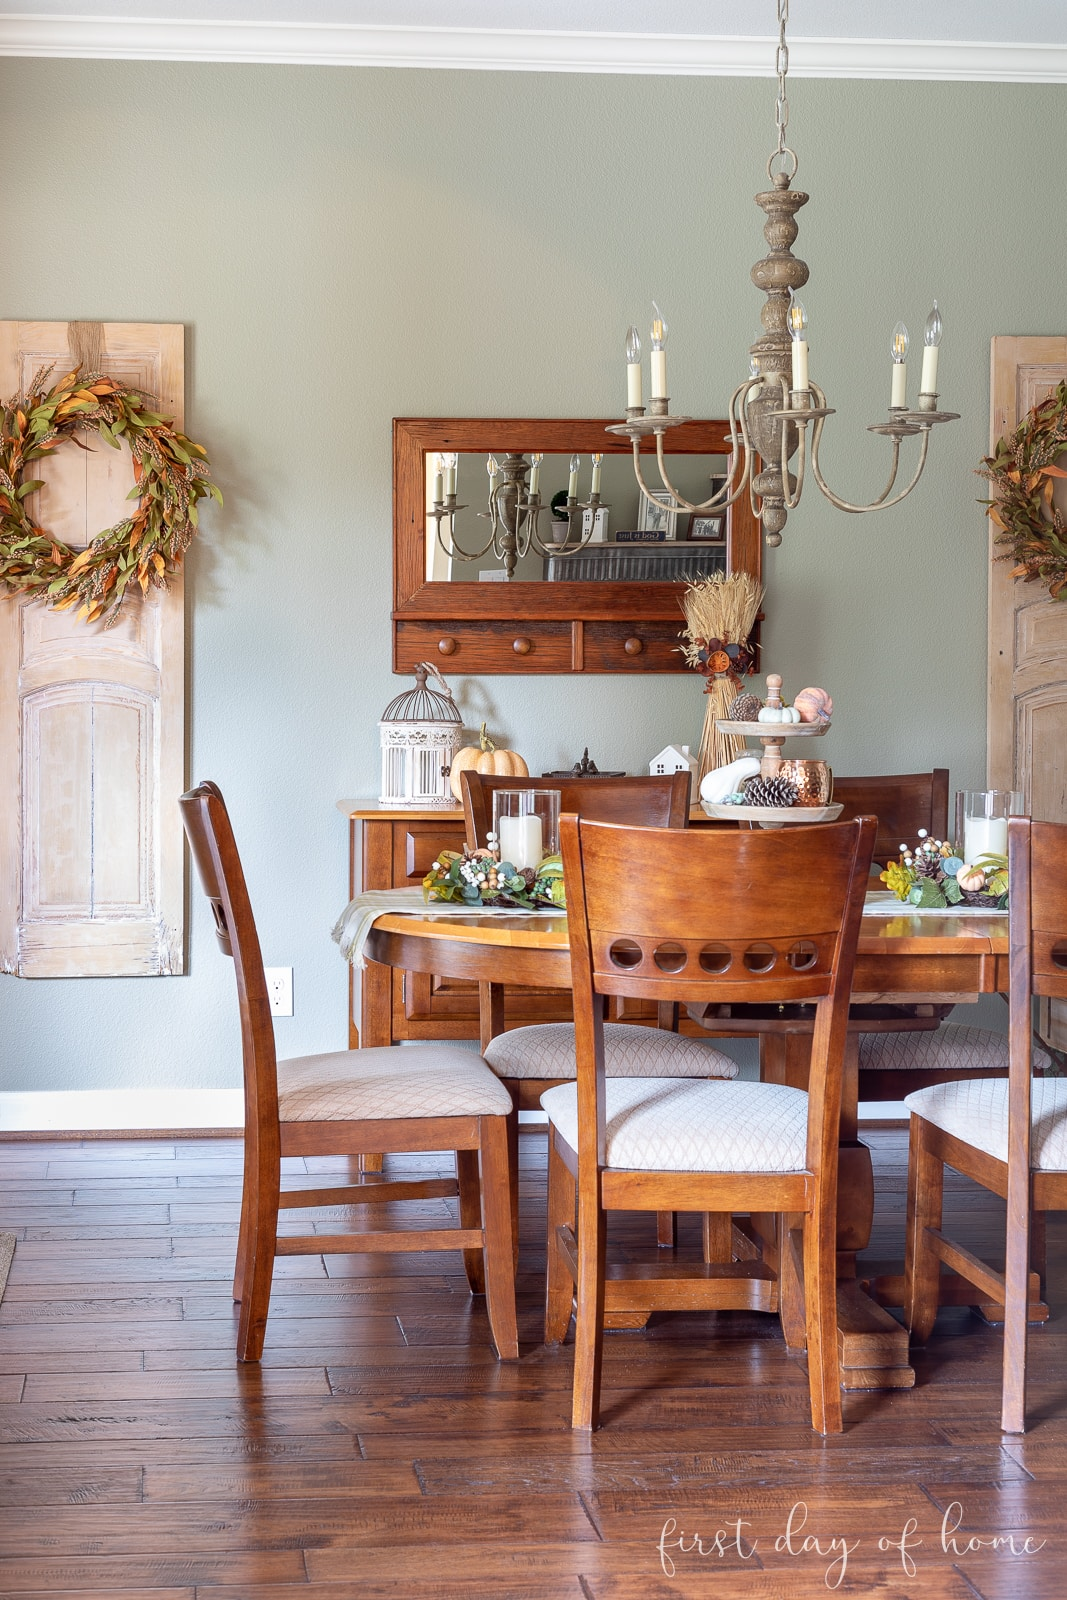 Fall breakfast room with farmhouse style decor including rustic door panels with fall wreaths